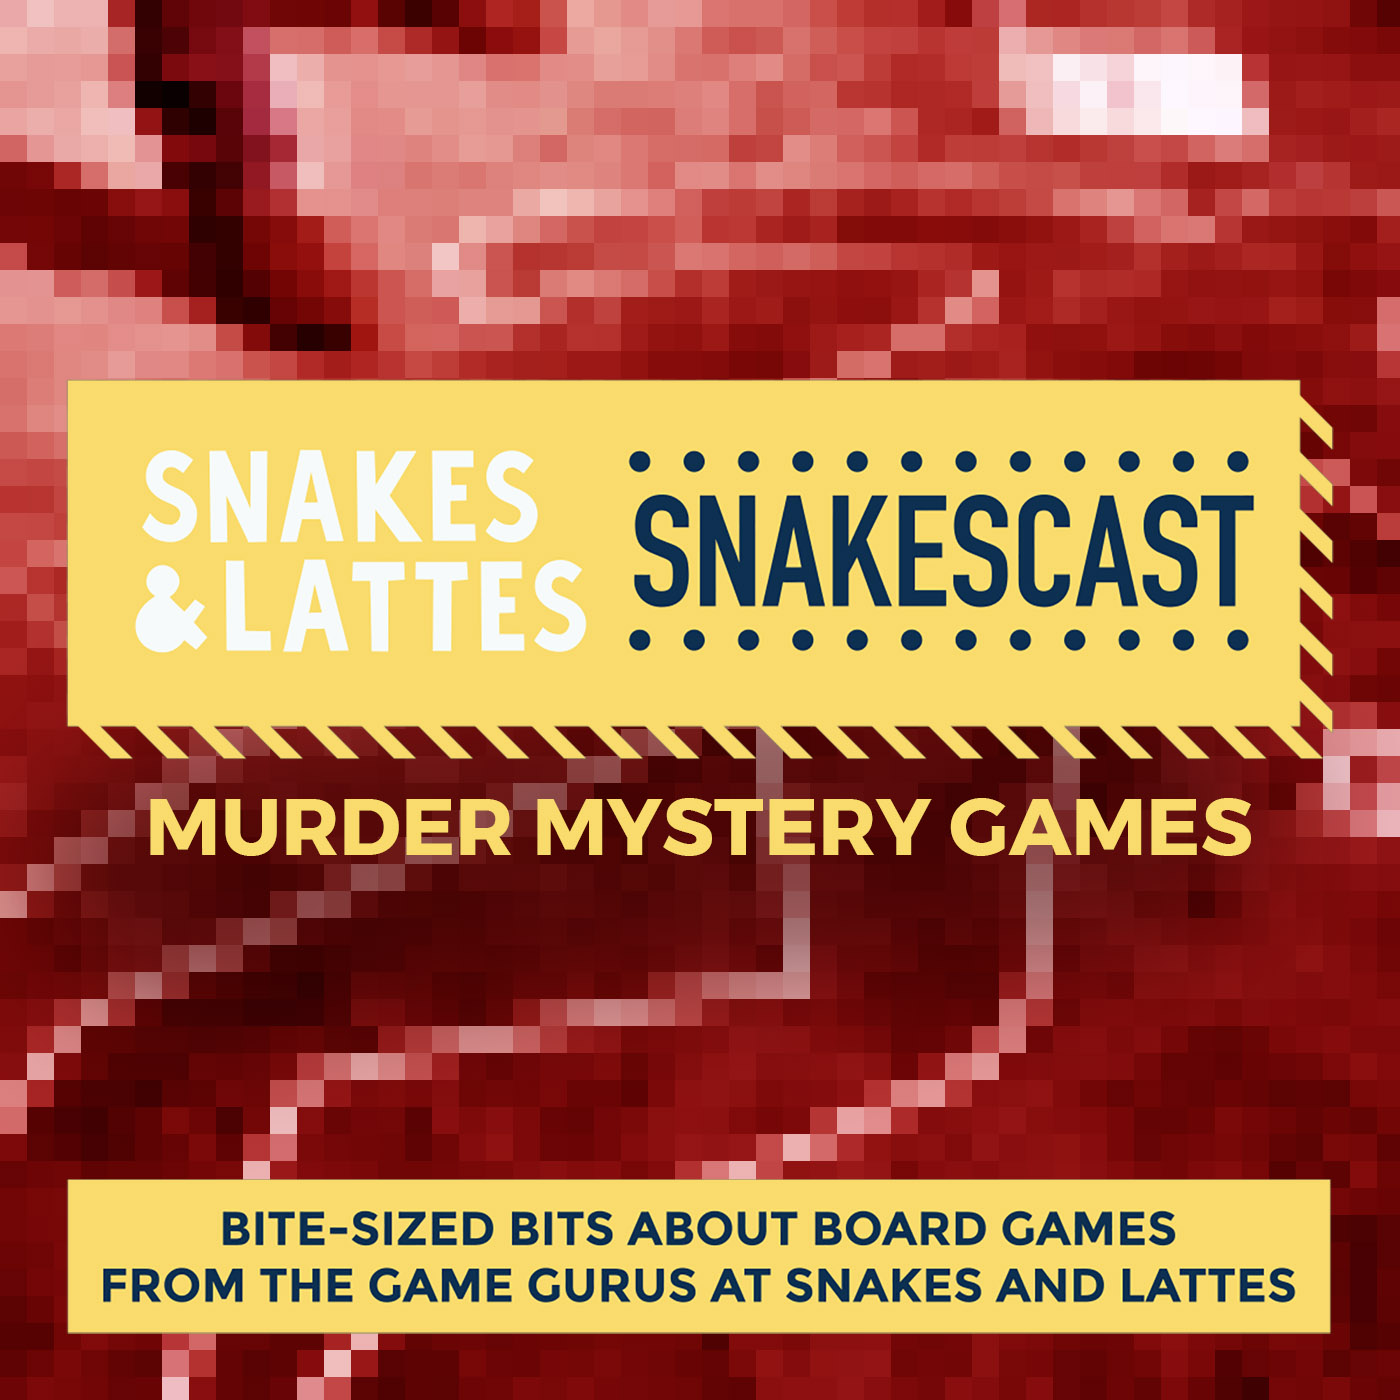 Murder Mystery Games, Part 1 - What is the appeal of these games?